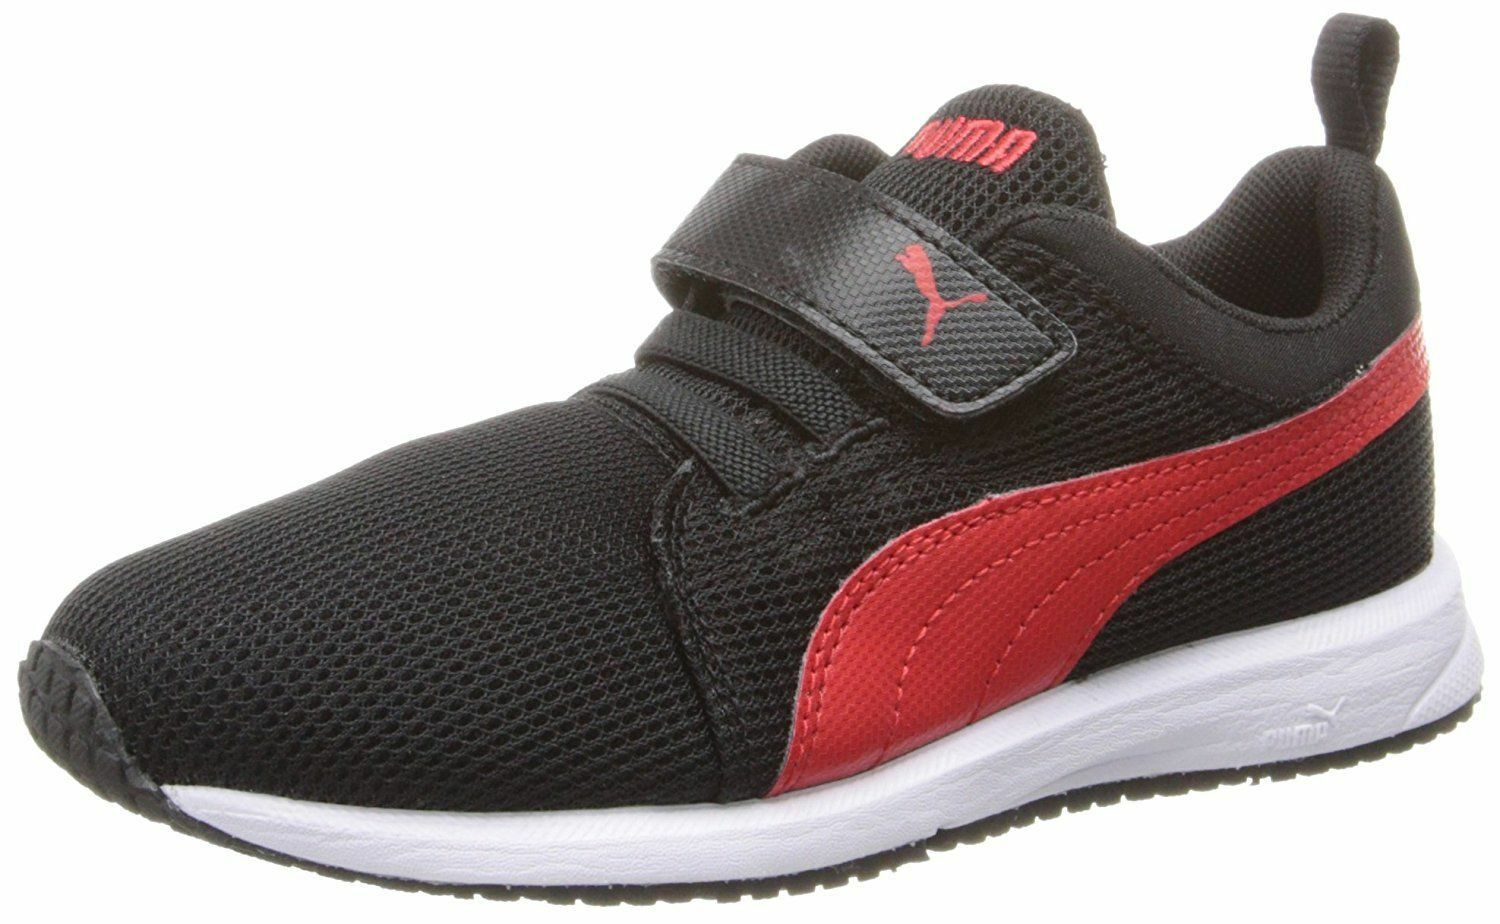 Puma PUMA Carson Runner V Kids Sneaker (Infant/Toddler/Little Kid) New